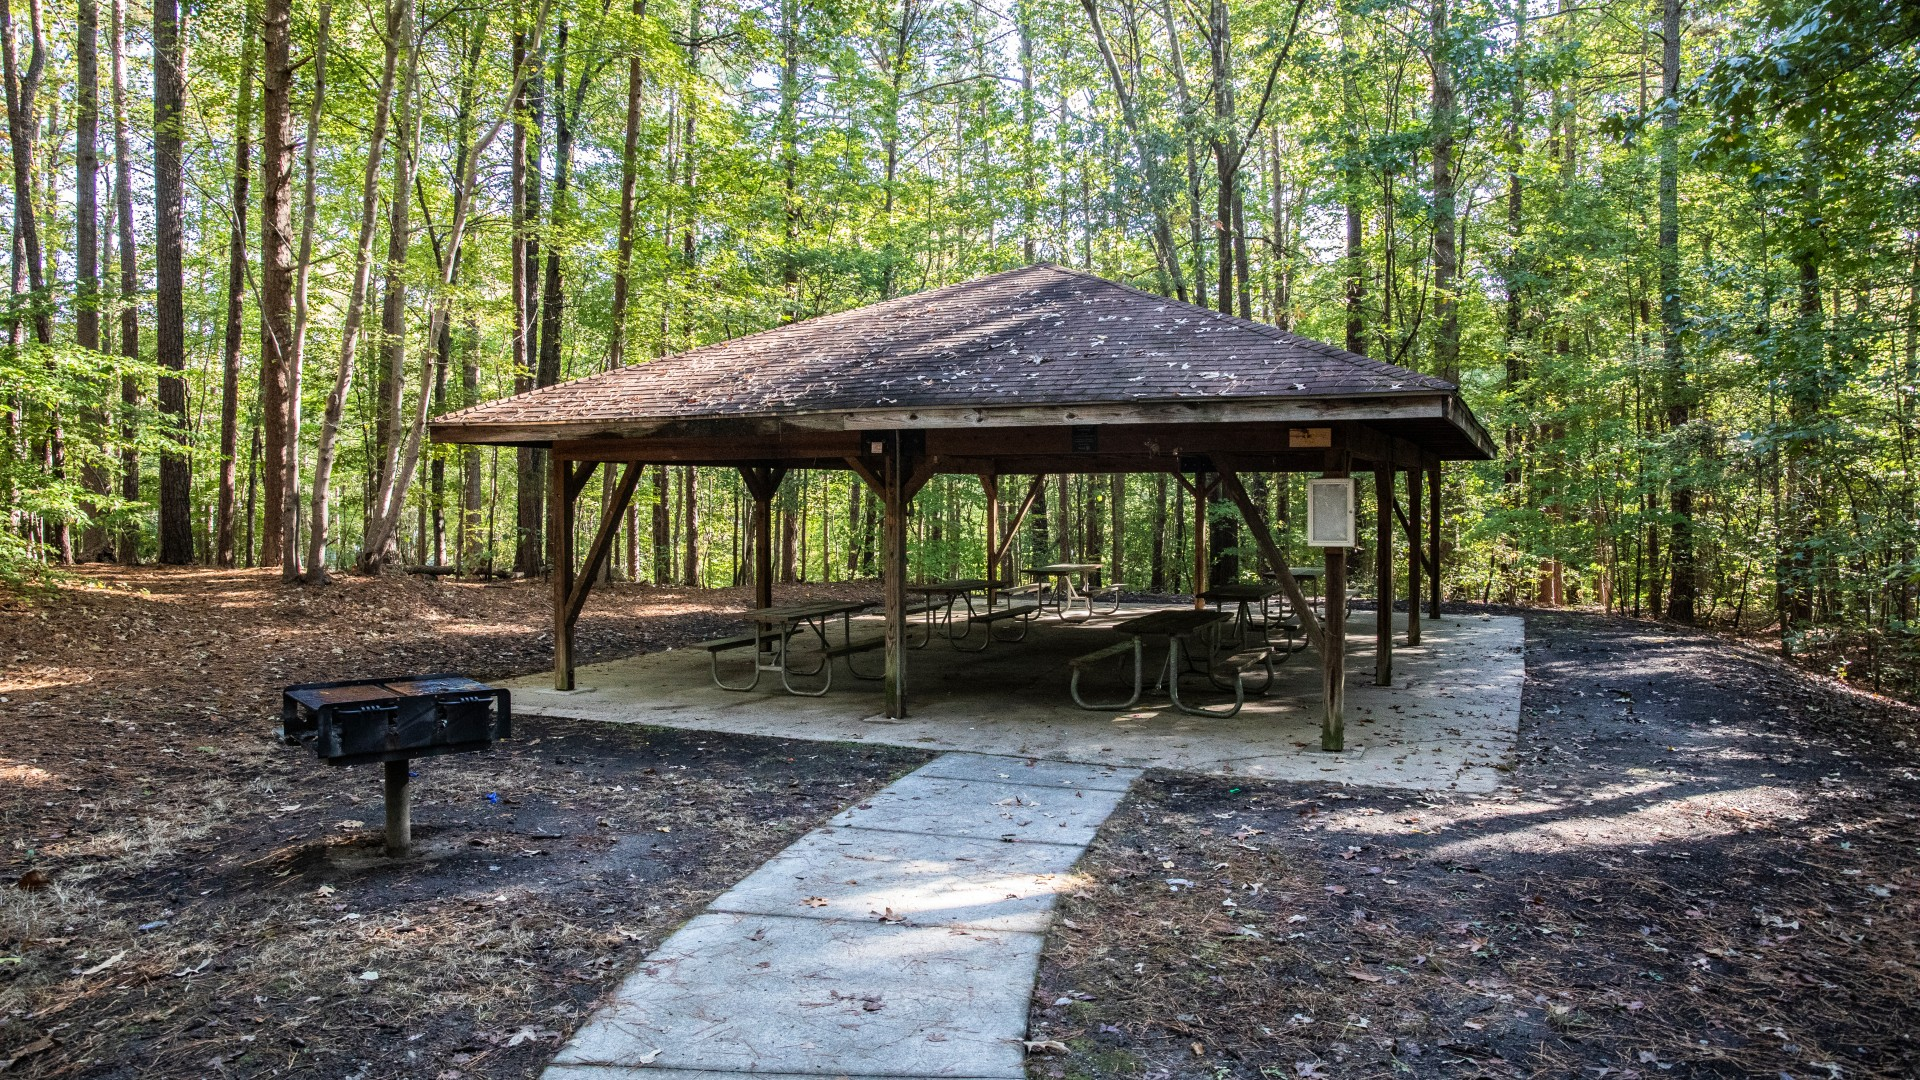 Outdoor picnic shelter at Cedar Hills Park featuring six tables and a grill